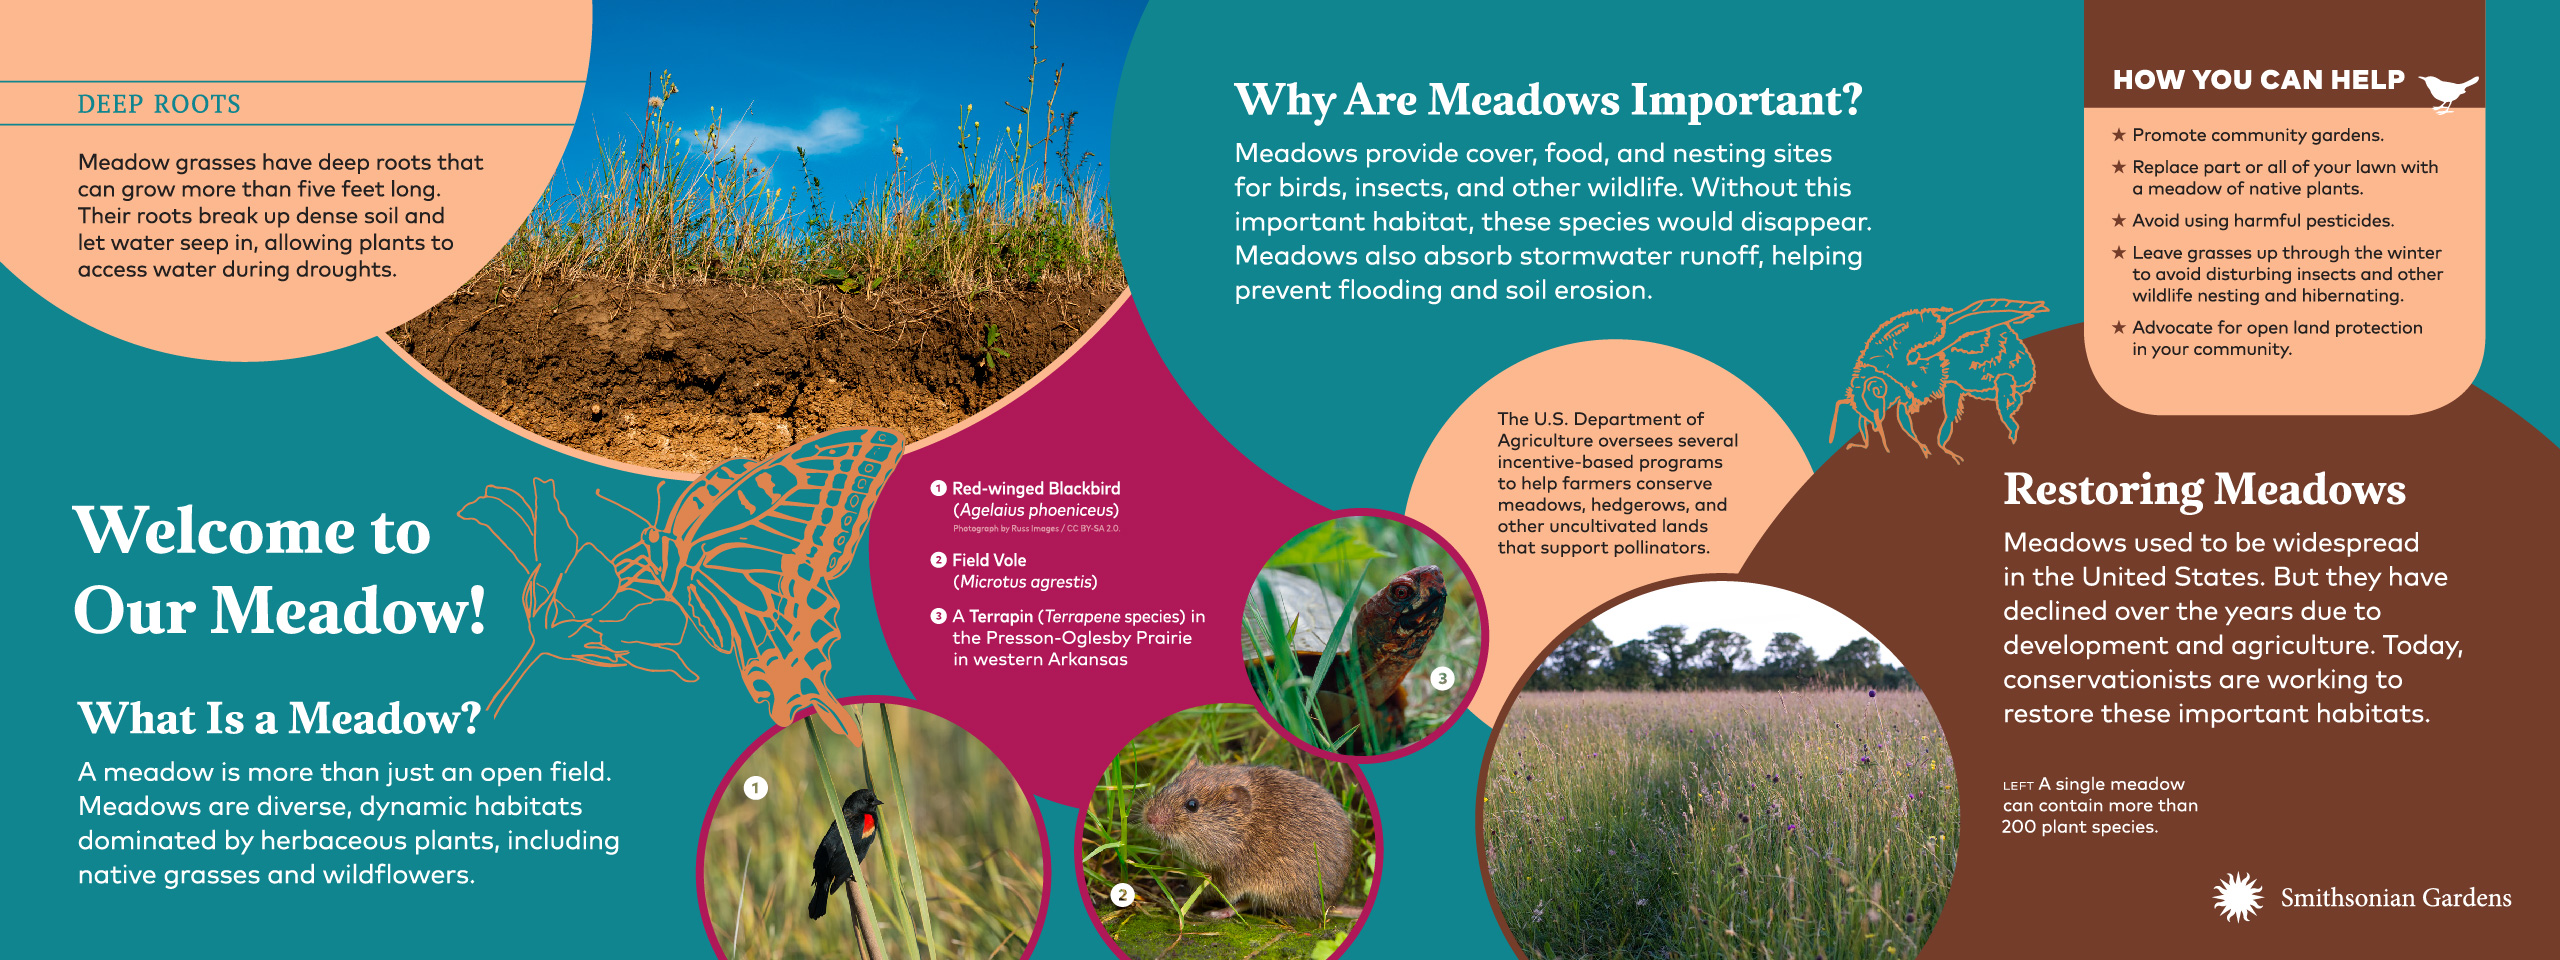 Welcome to Our Meadow! exhibit panel